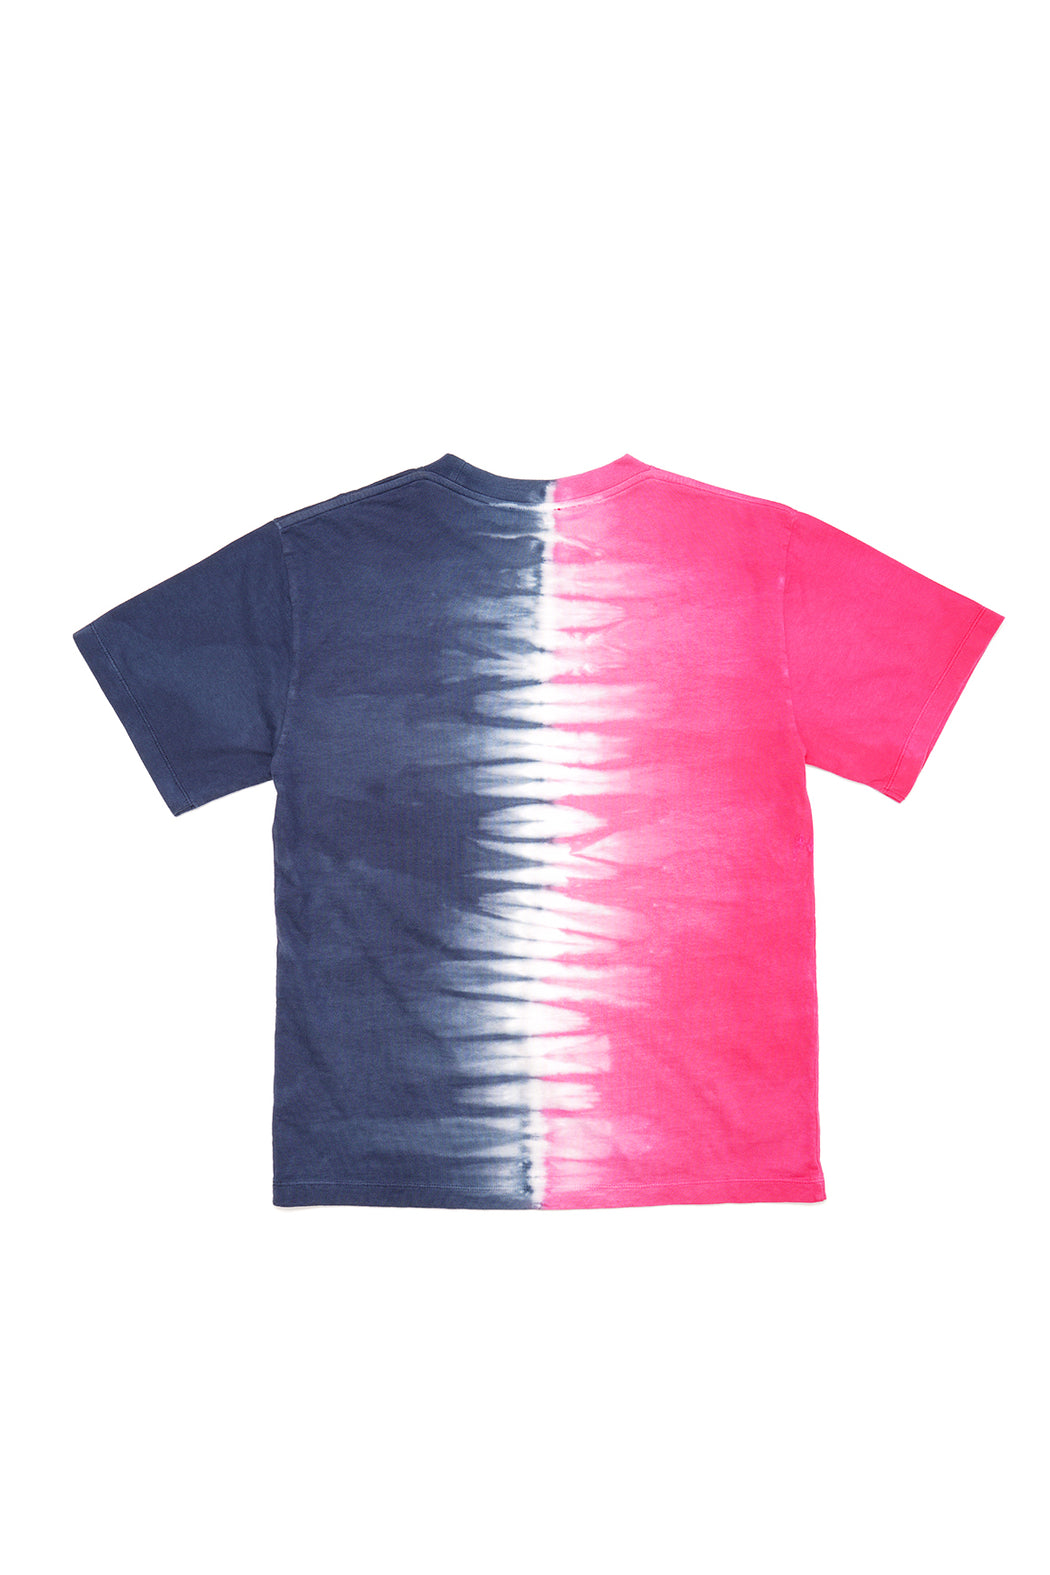 Tie Dye Half and Half Tee - Blue/Fuschia